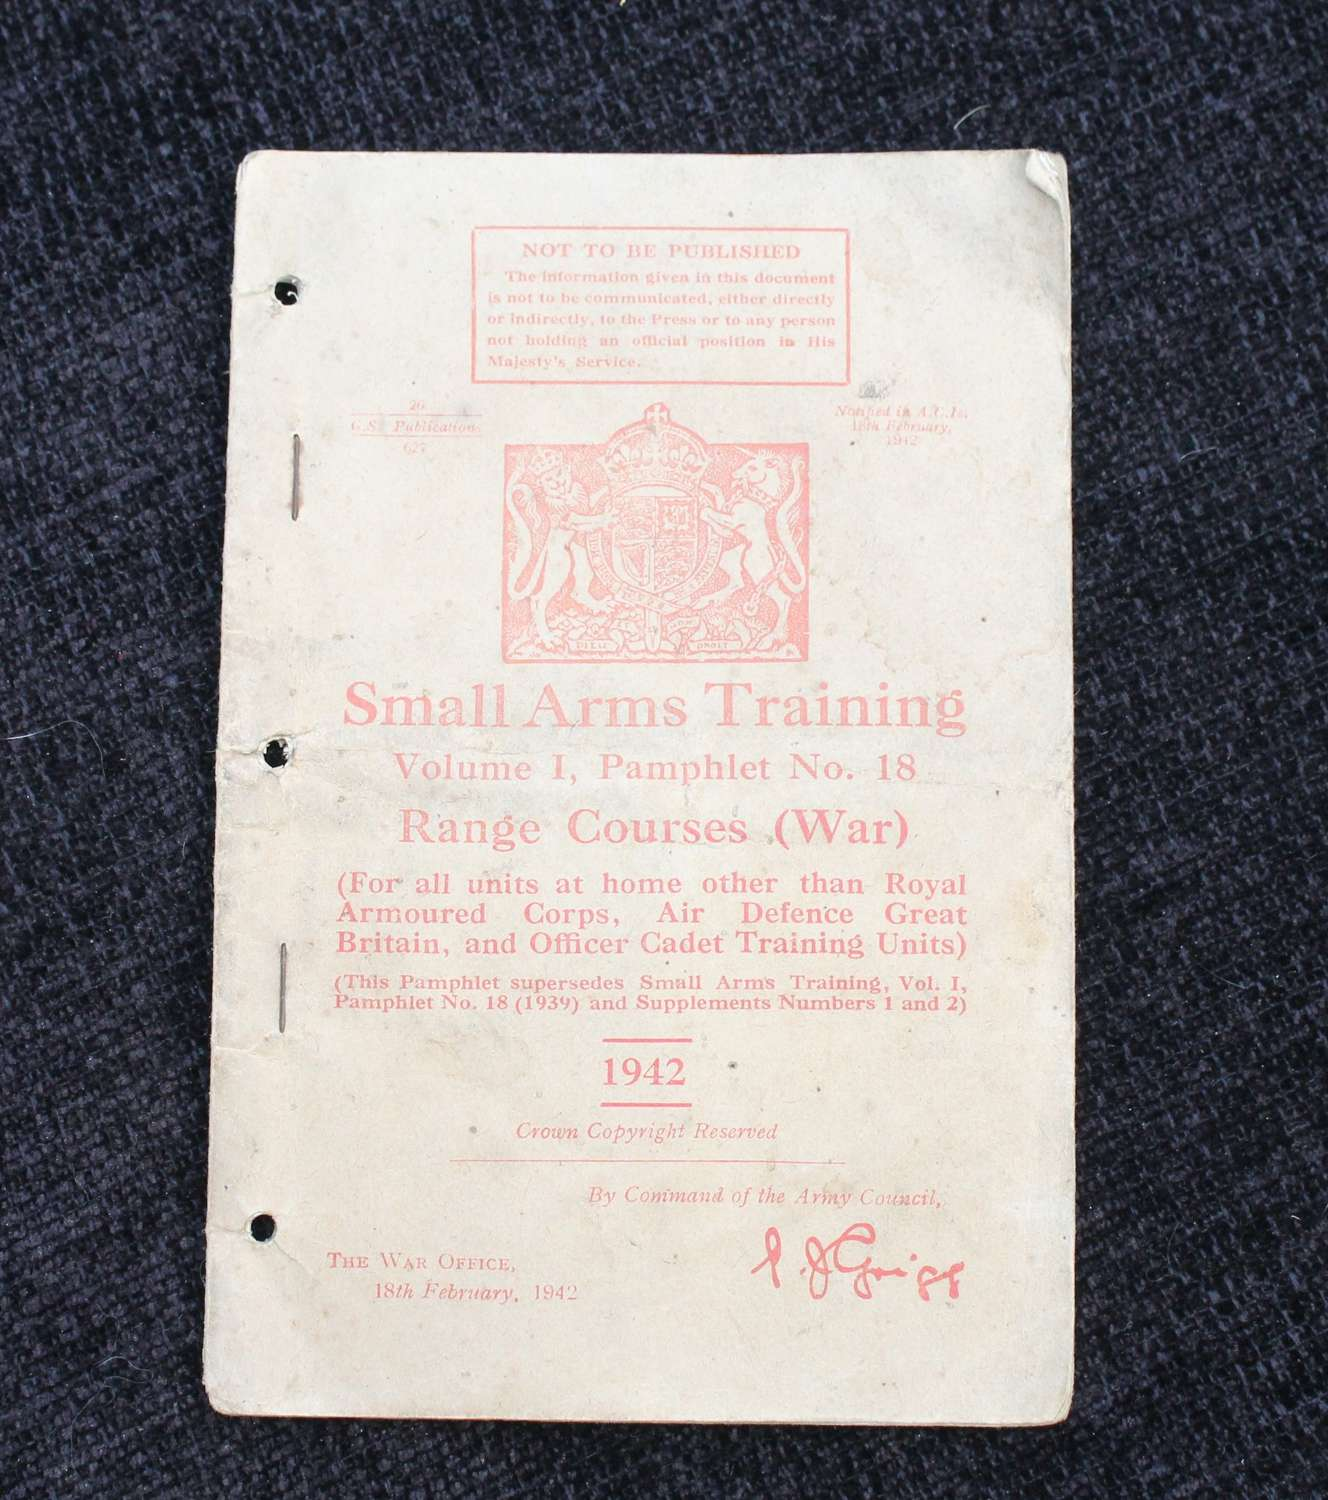 Small Arms Training Vol 1 Pamphlet 18 Range Courses 1942